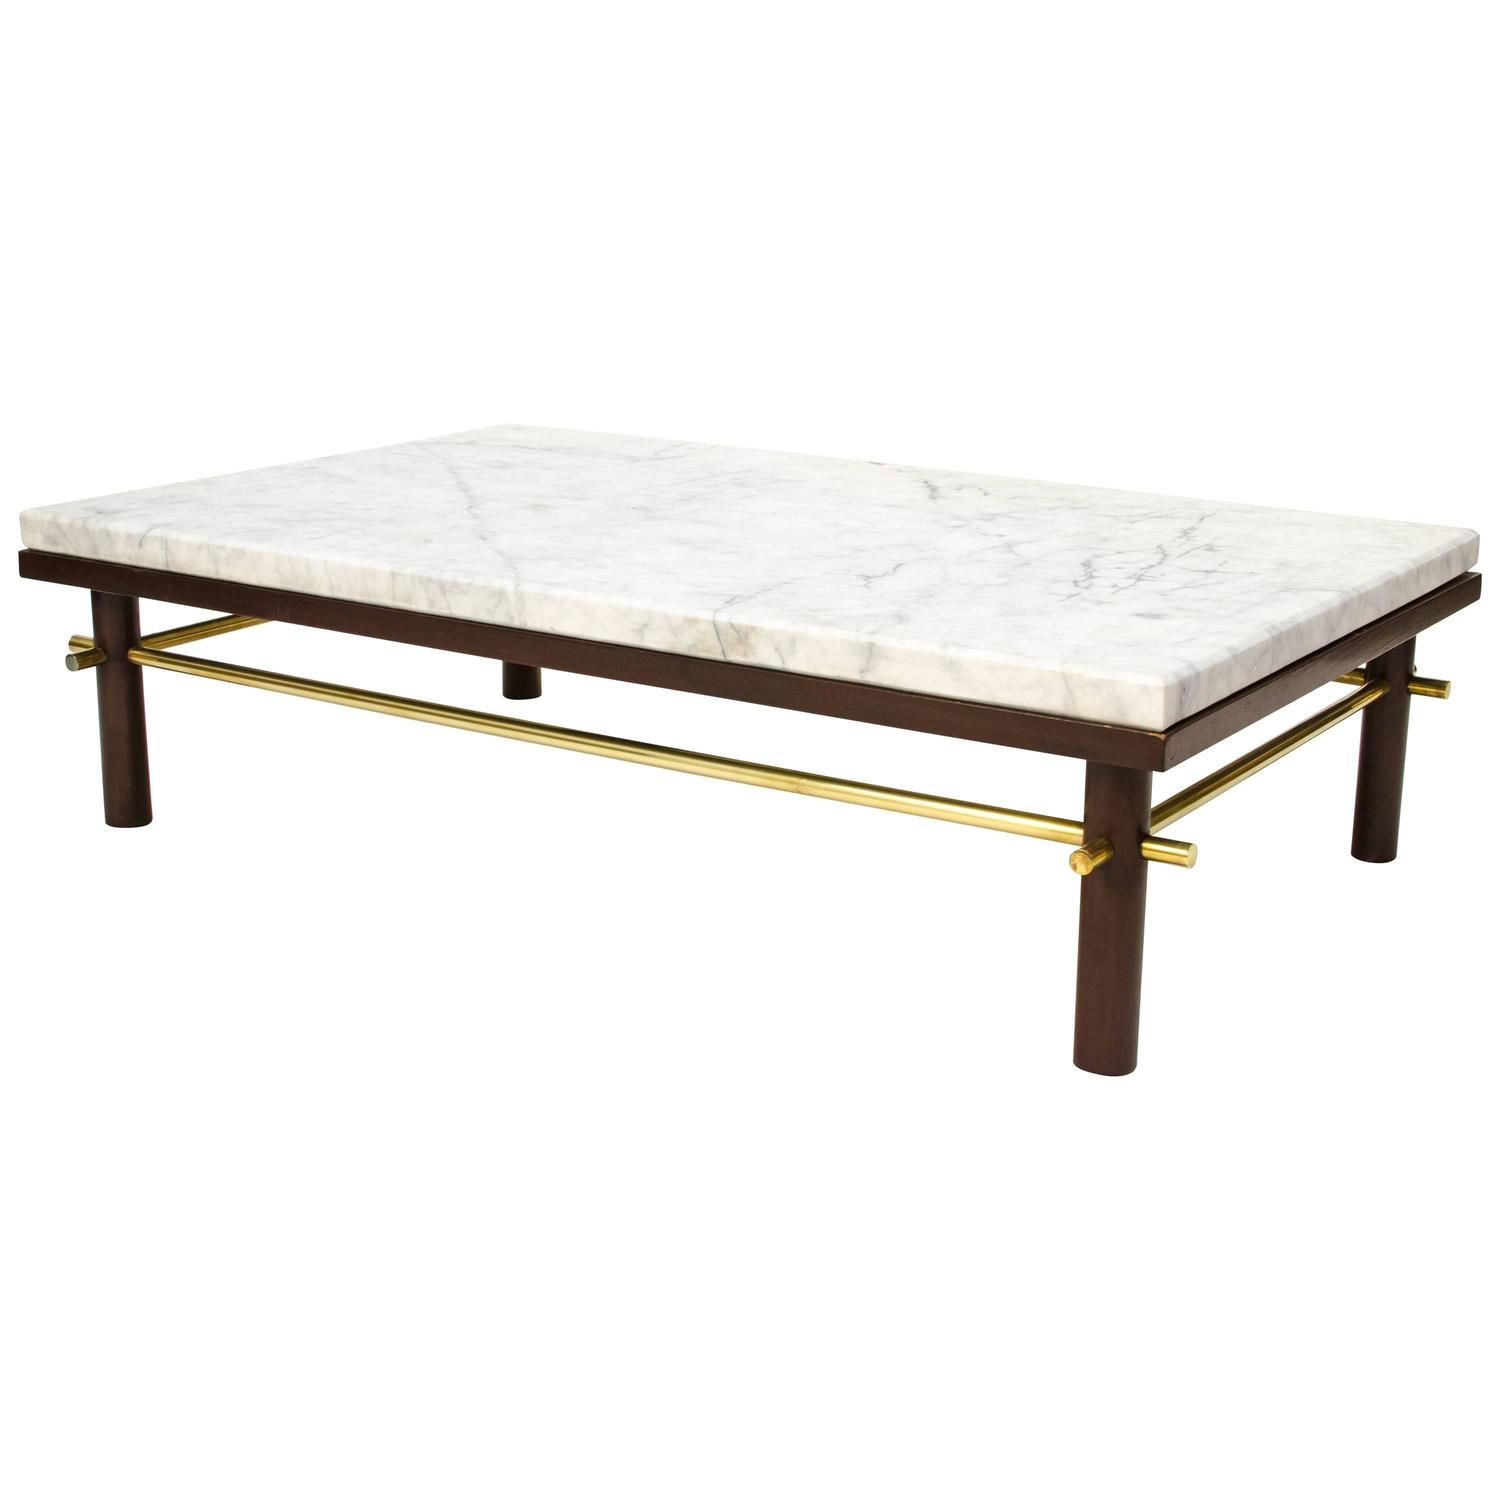 1950s Brass And Marble Coffee Table In The Manner Of Harvey Probber At 1stdibs